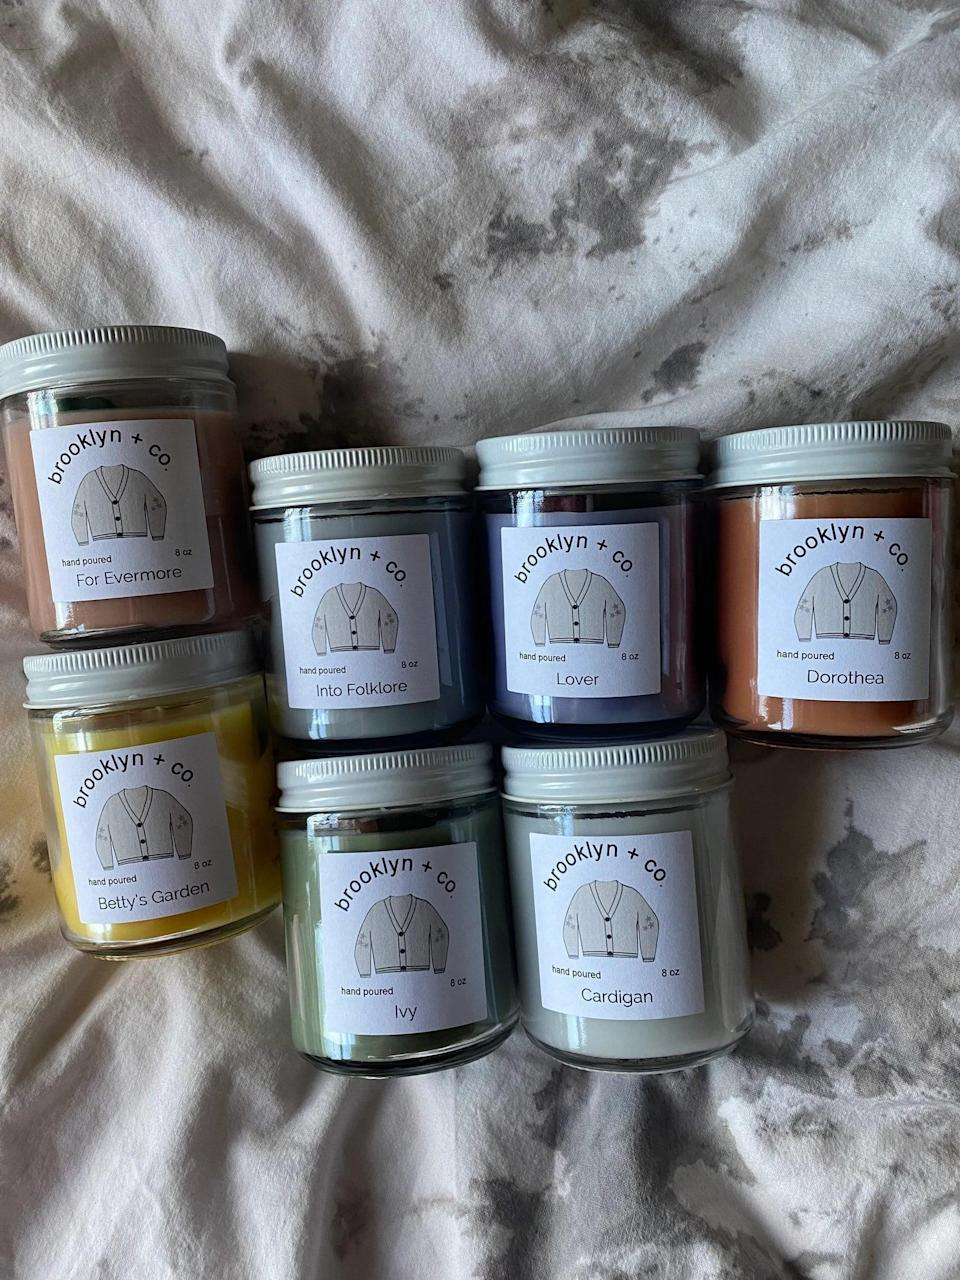 <p>The <span>Taylor Swift Inspired Candles</span> ($12 each, $70 for all seven) is such a thoughtful gift for the candle lover. Into folklore smells like chai latte, for evermore smells like rosewater, lover smells like love spell, ivy smells like balsam fir, cardigan smells like clean cotton, dorothea smells like oatmeal and honey, and betty's garden smells like honeysuckle.</p>